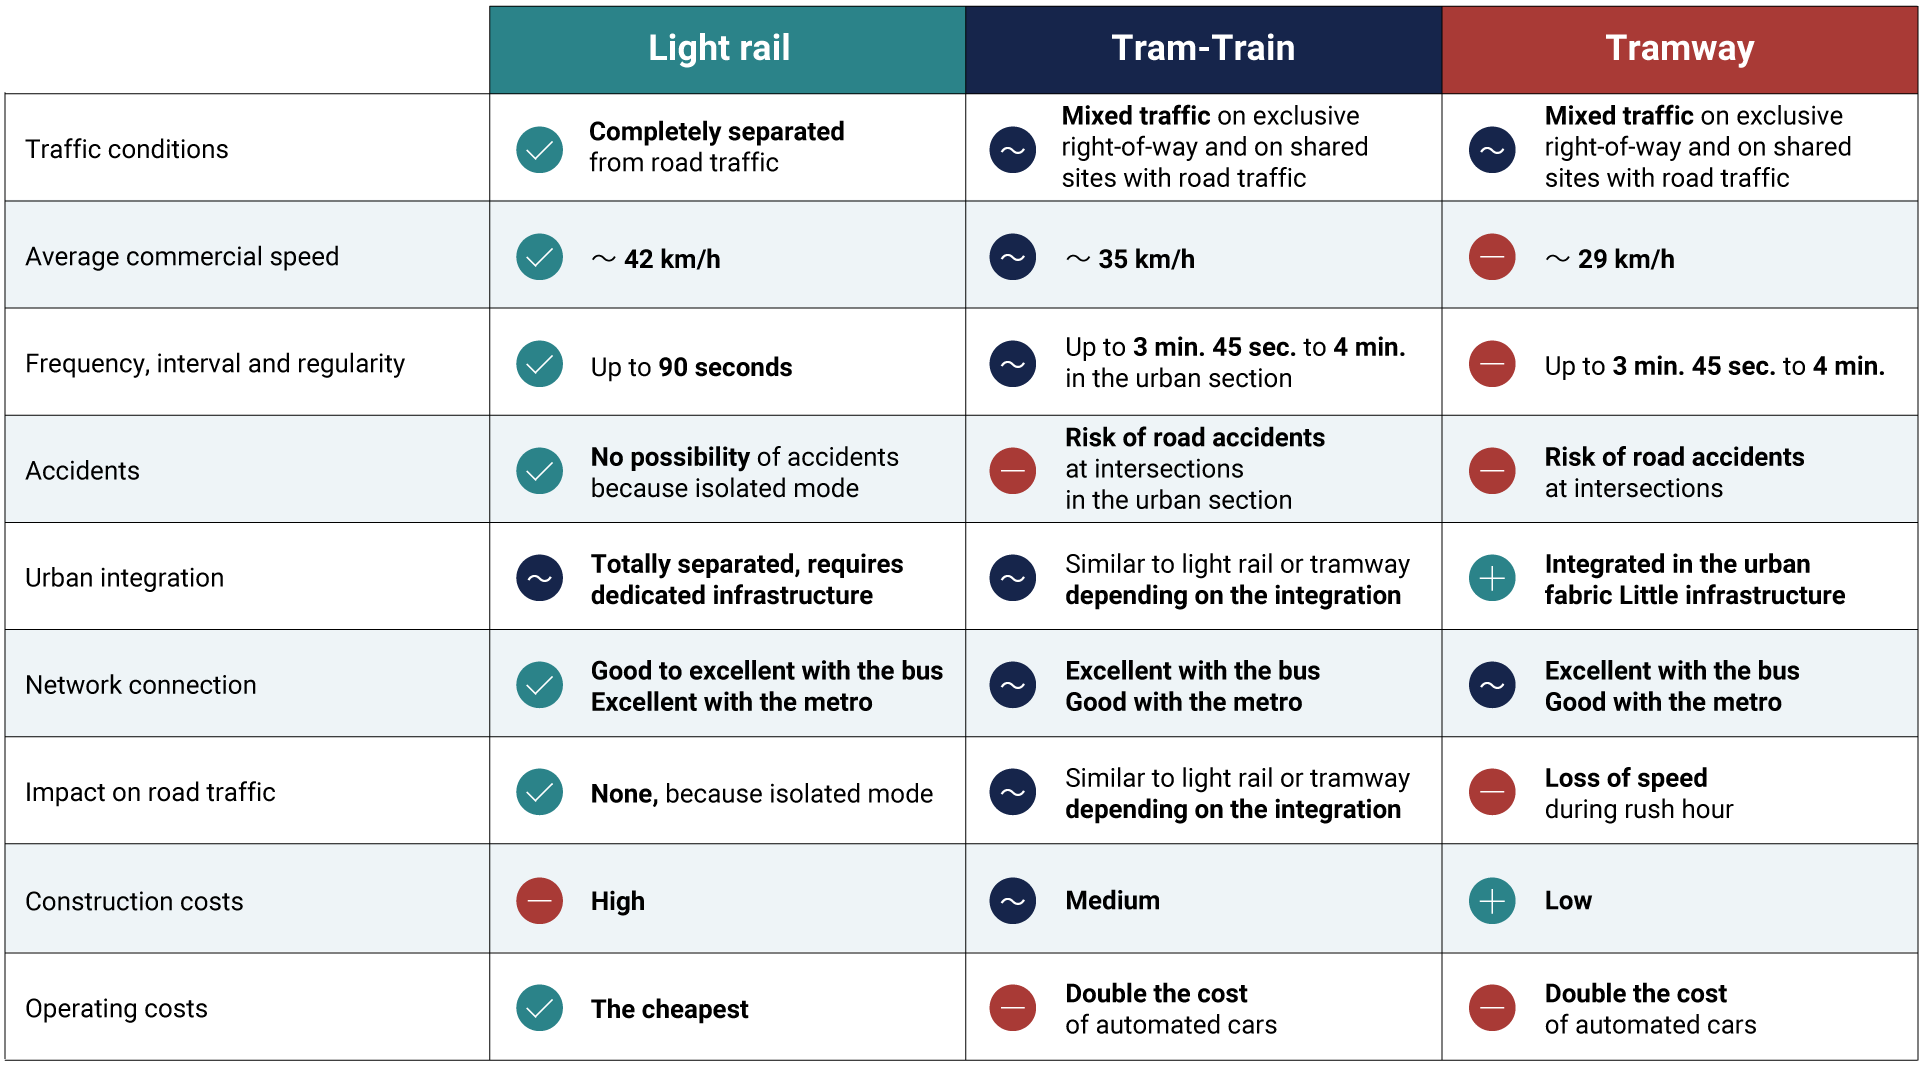 Comparison table of tramway, tram-train and light rail